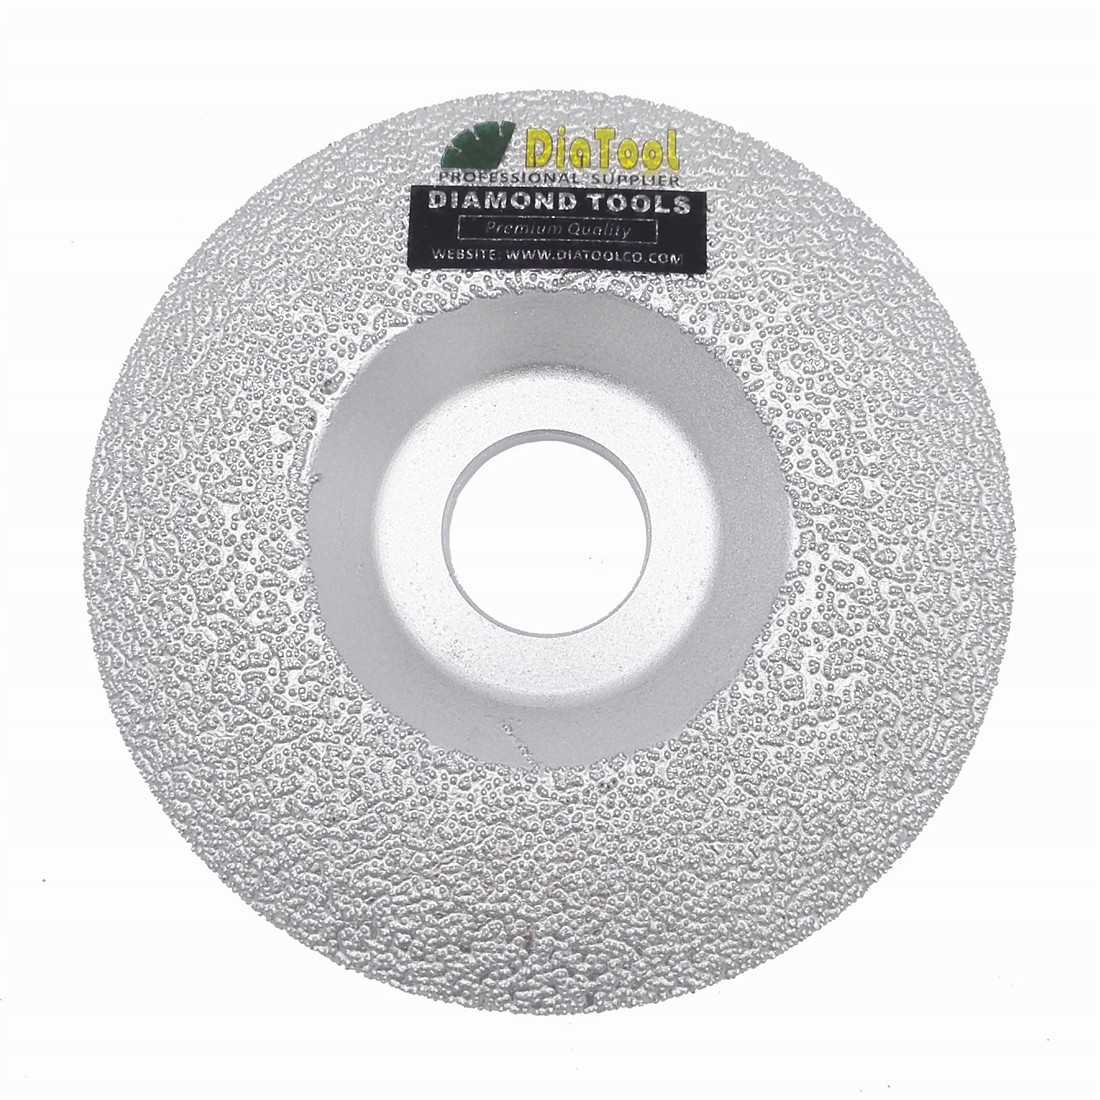 DIATOOL Vacuum Brazed Diamond Grinding Cup Wheel For All Stone And Construction Material Diamond Cup On Stone